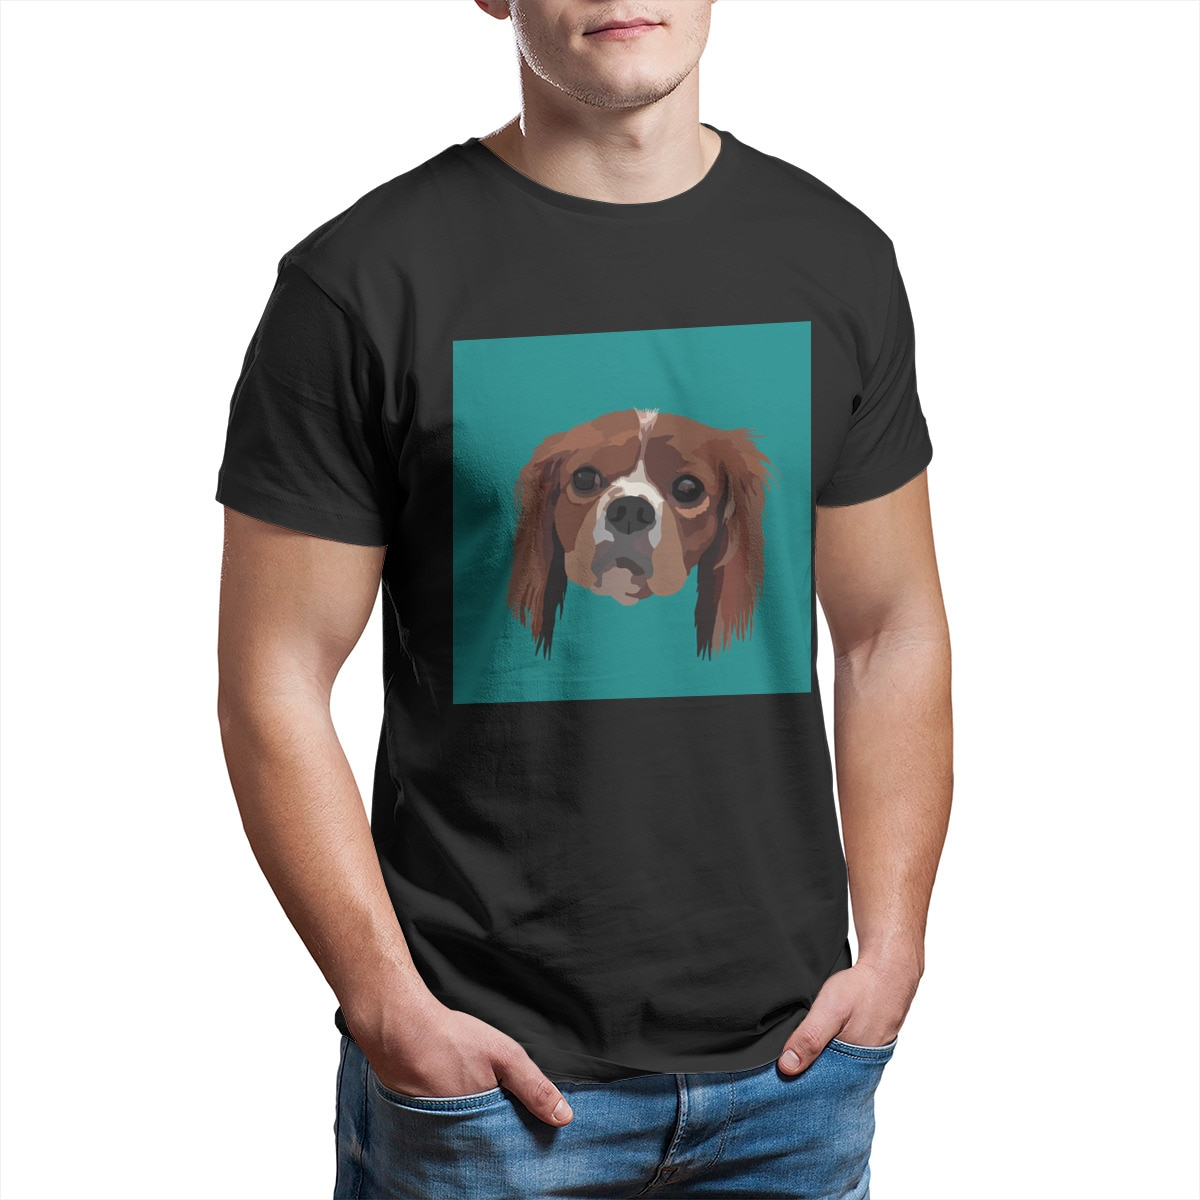 George the King Charles Spaniel T-Shirt Custom Games Punk Cute Sleeve Streetwear Tees 12511